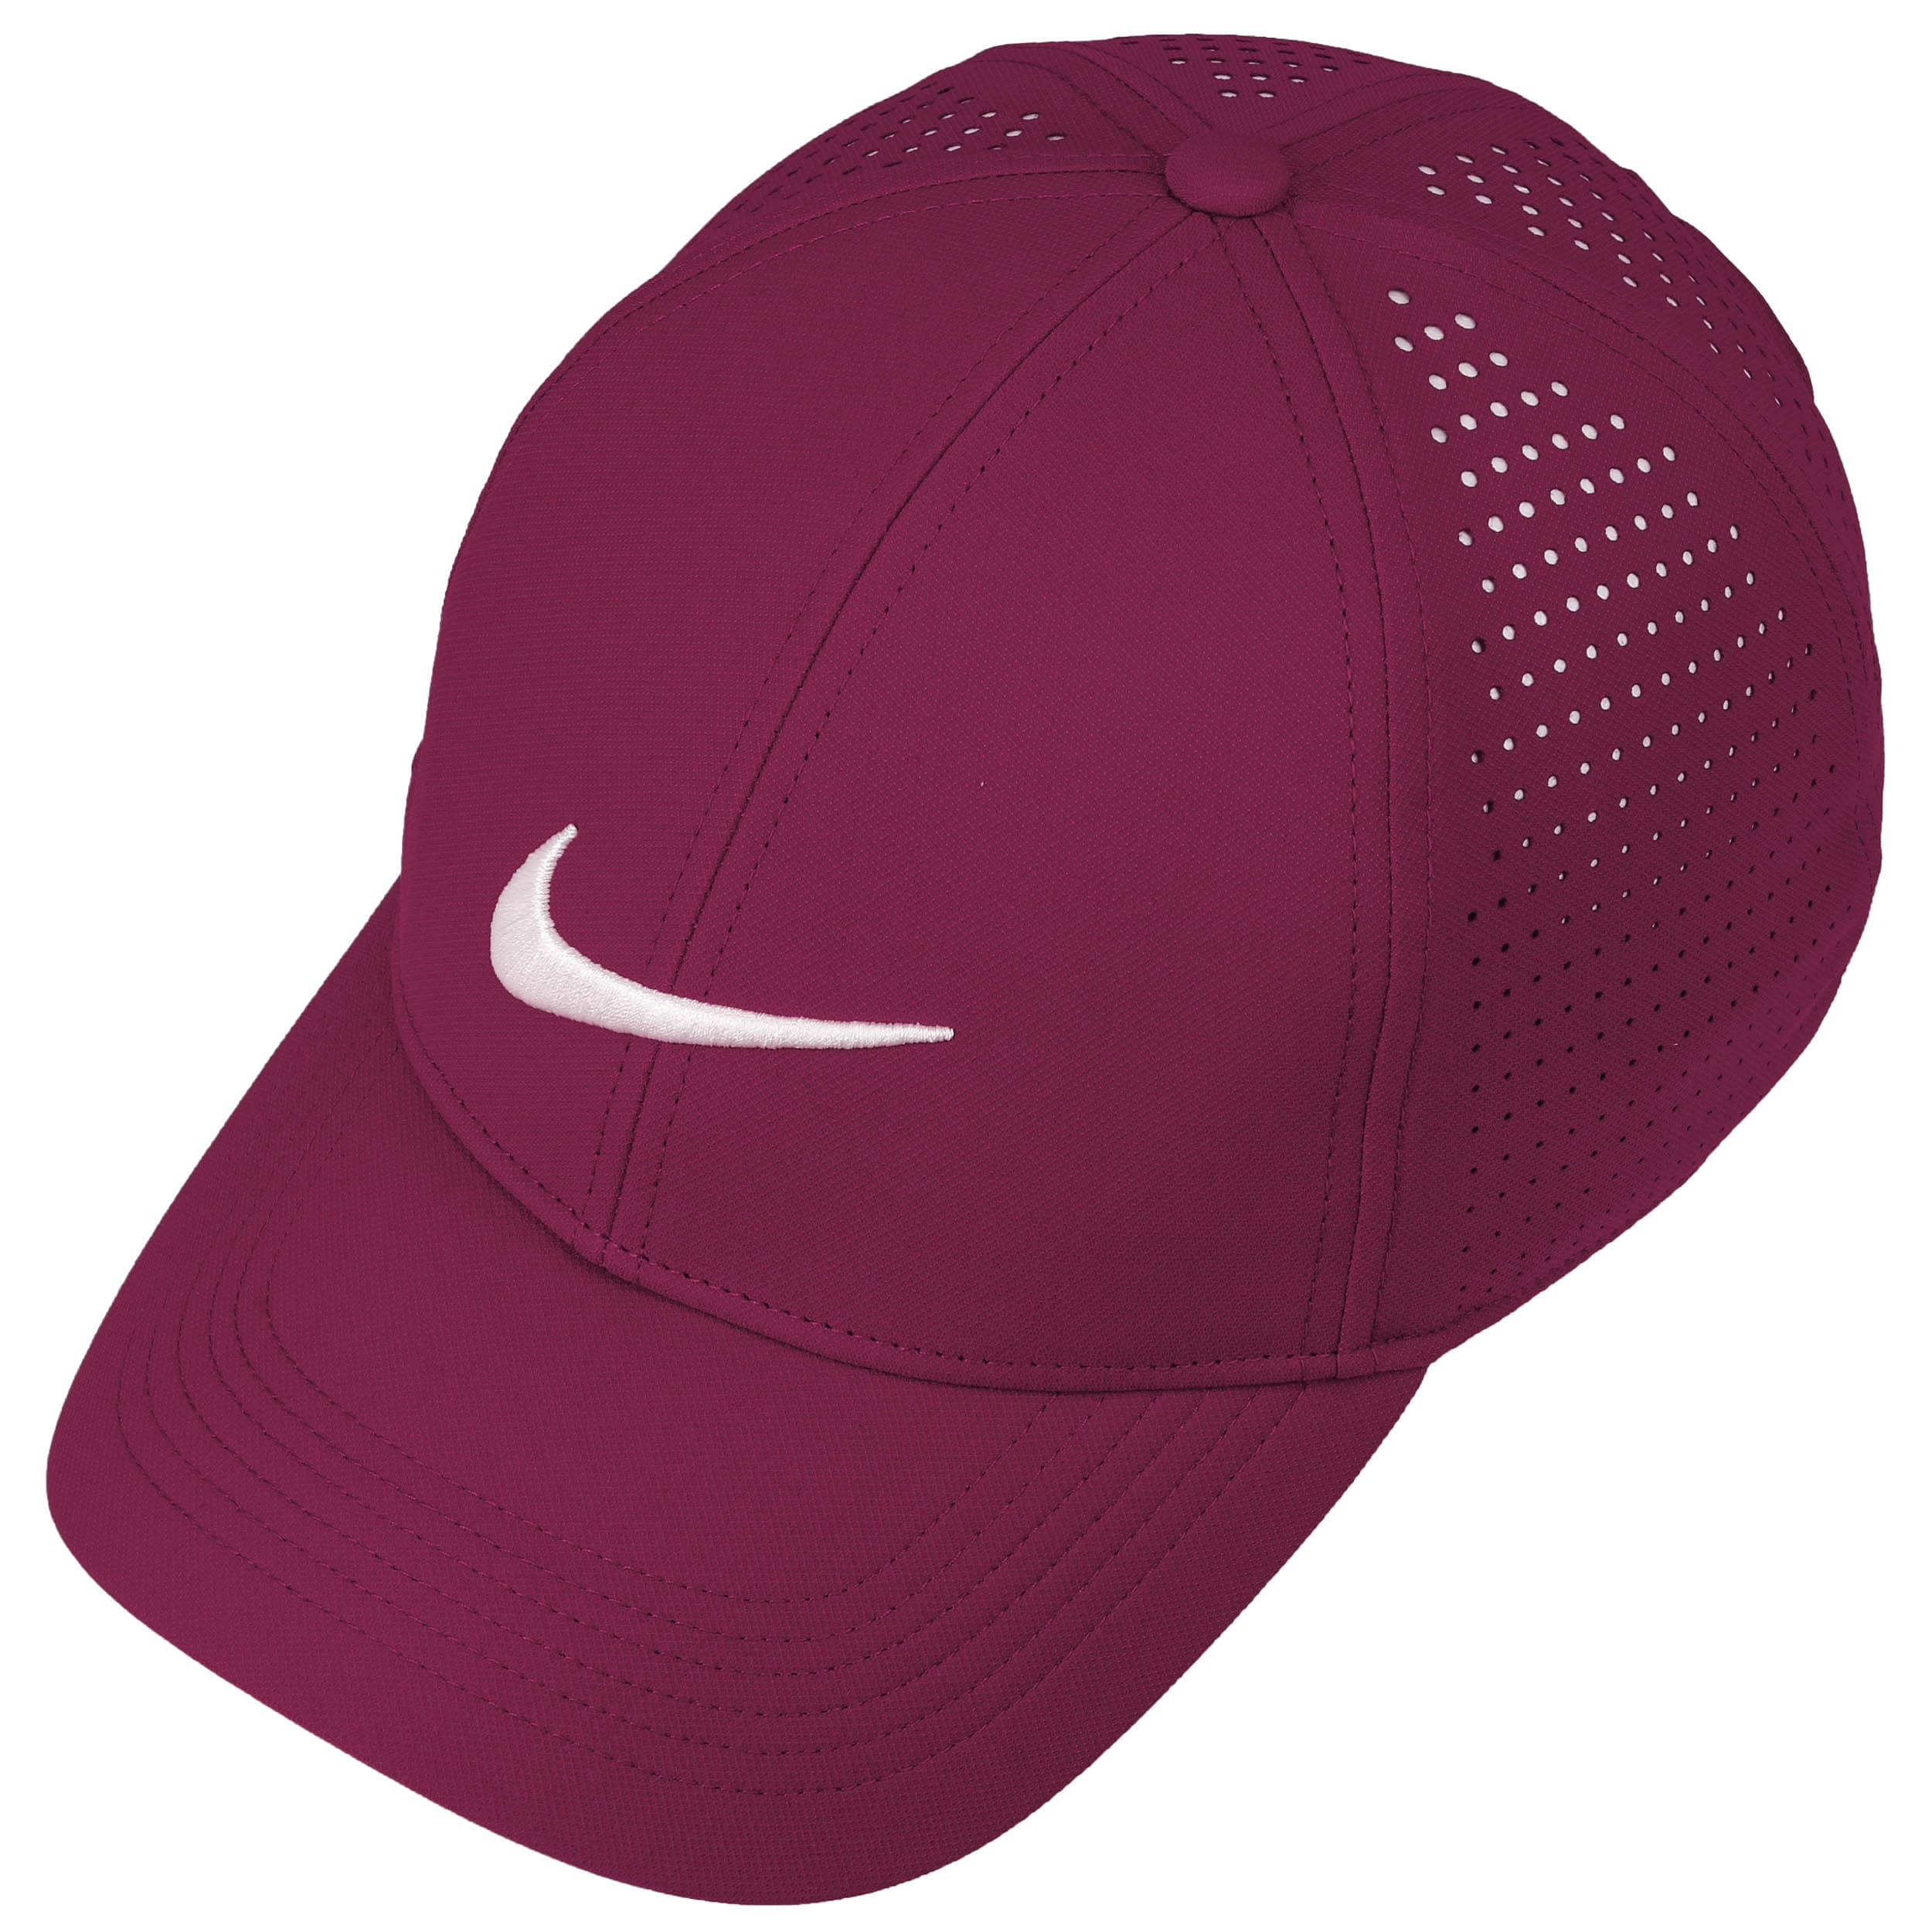 ... Cappellino Legacy 91 Perf by Nike - rosso bordeaux 1 ... a7b1ede3695b